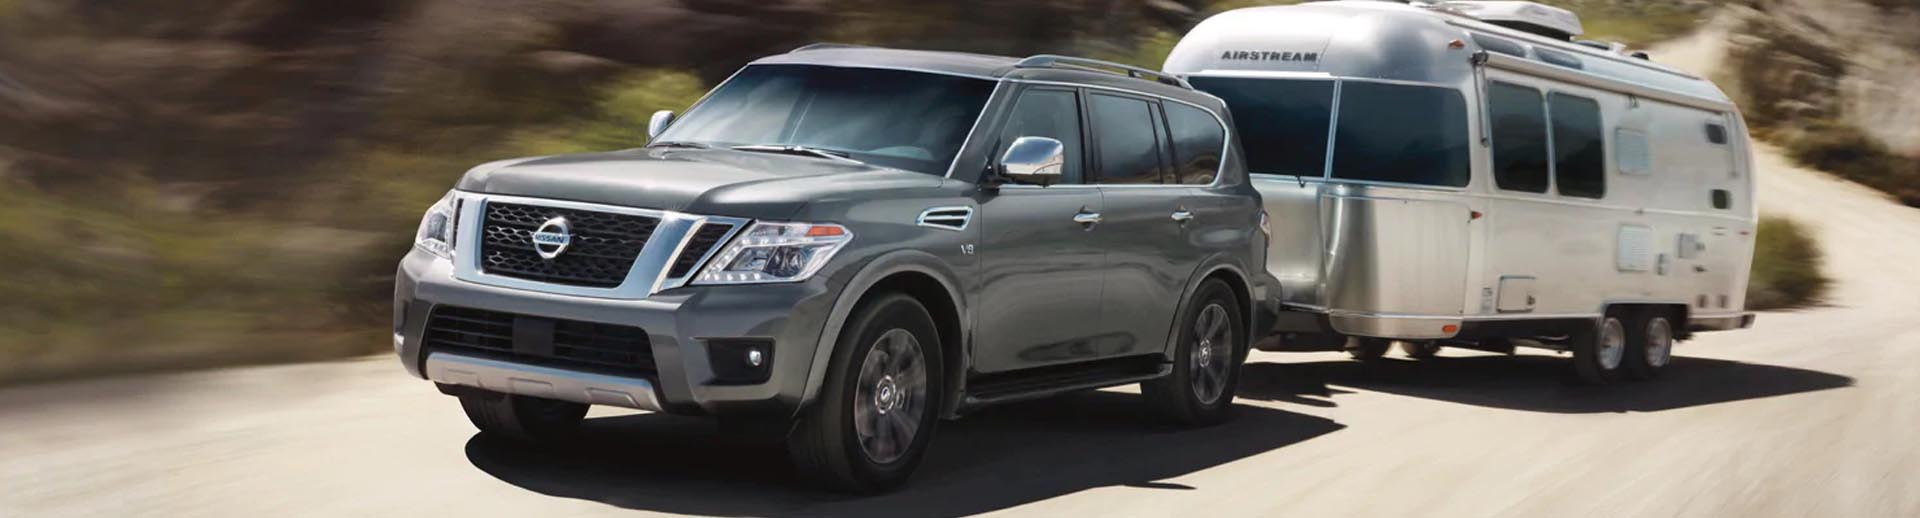 2020 Nissan Armada Lifestyle Photo